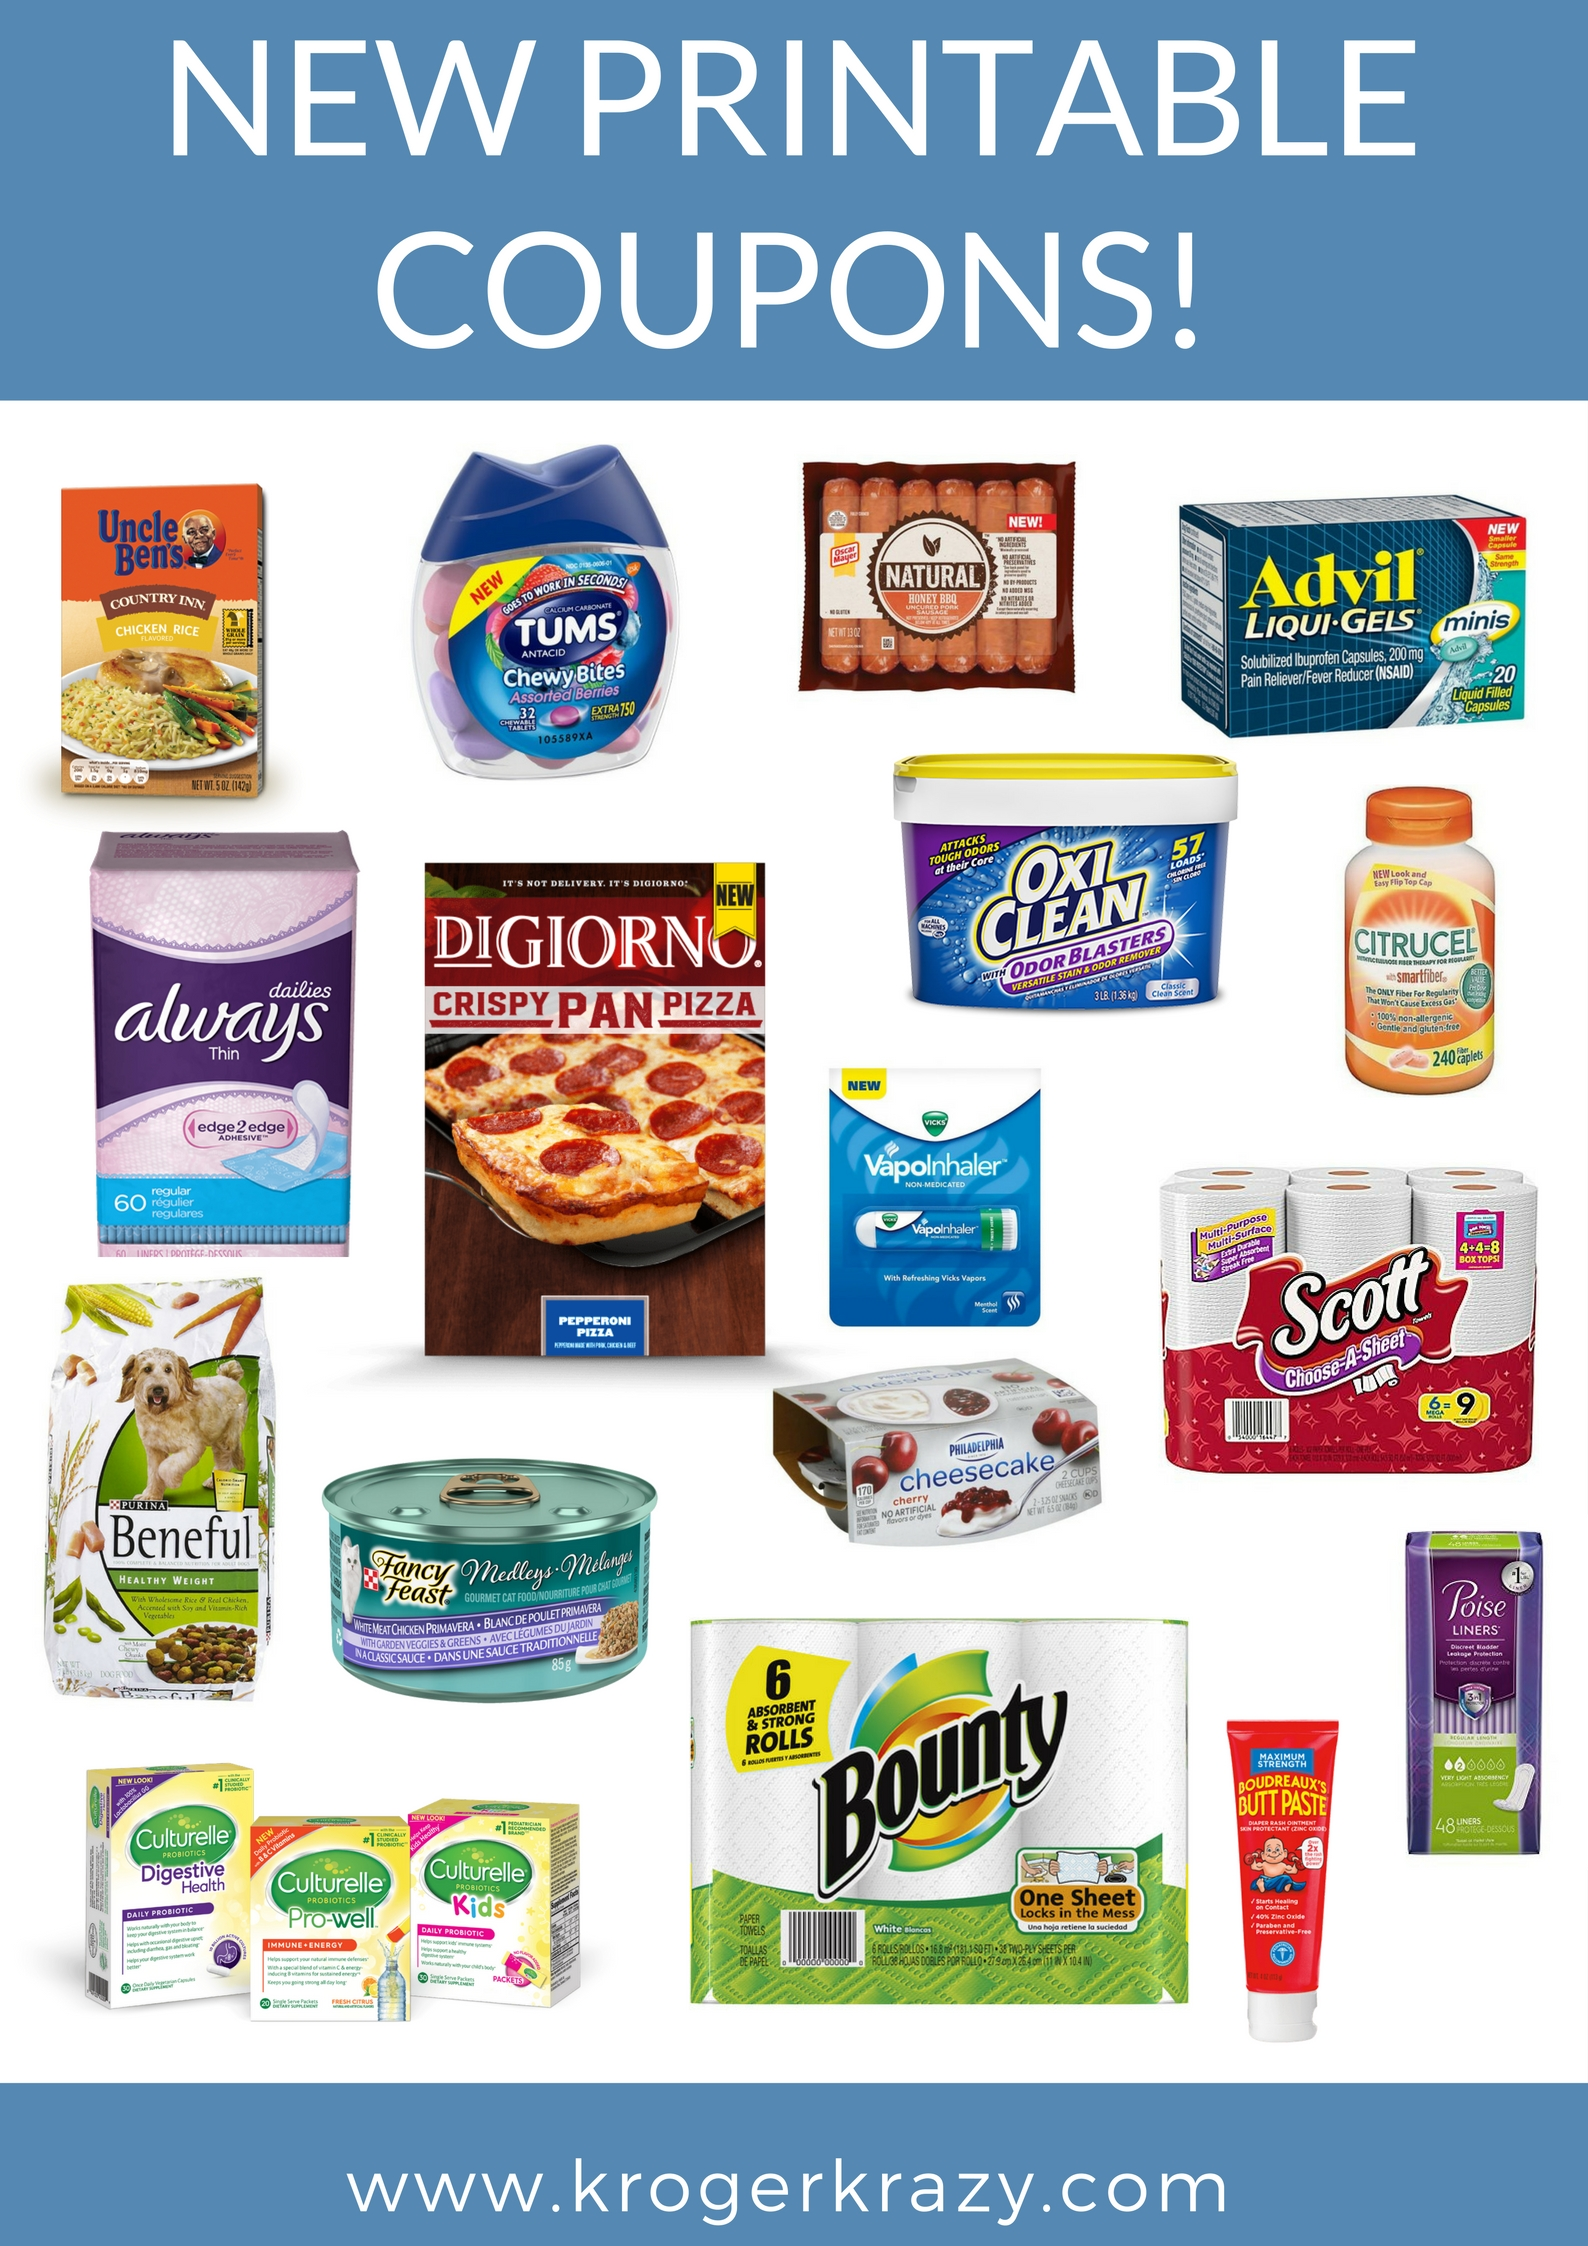 photo regarding Tums Coupon Printable named Refreshing Printable Discount coupons! Tums, Tampax, DiGiorno, Usually, Scott